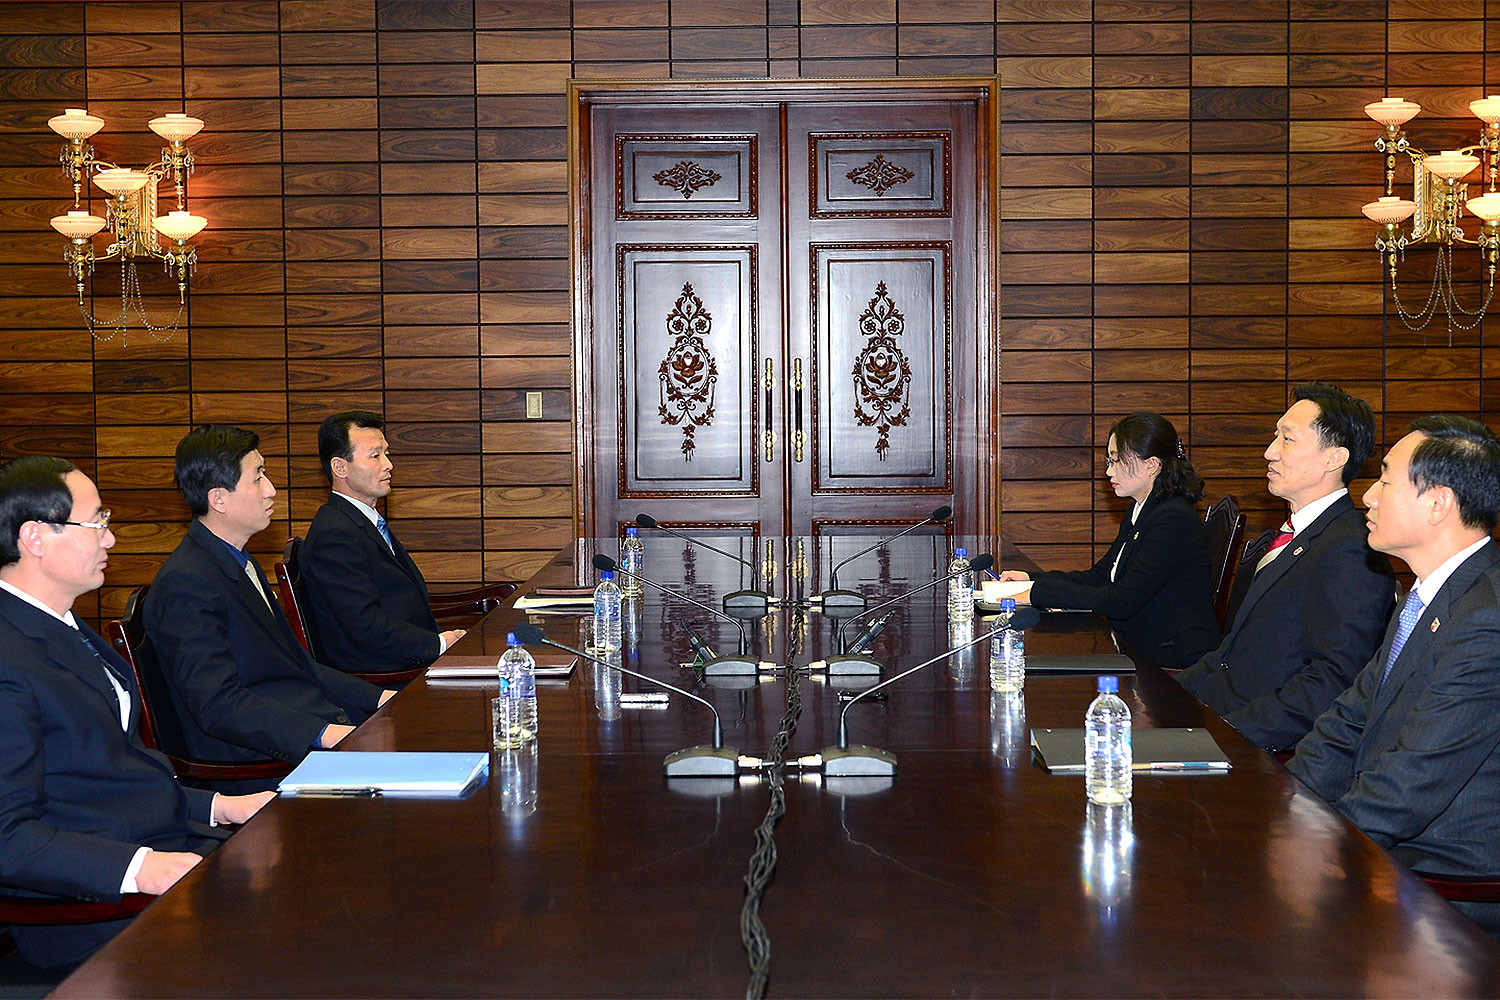 In this handout provided by South Korean Unification Ministry, Lee Duk-Haeng (R, Center), the head of South Korea's working-level delegation to family reunion talks with his North Korean counterpart Park Yong-Il (L, Center) during their meeting on Feb. 5, 2014 in Panmunjom, North Korea